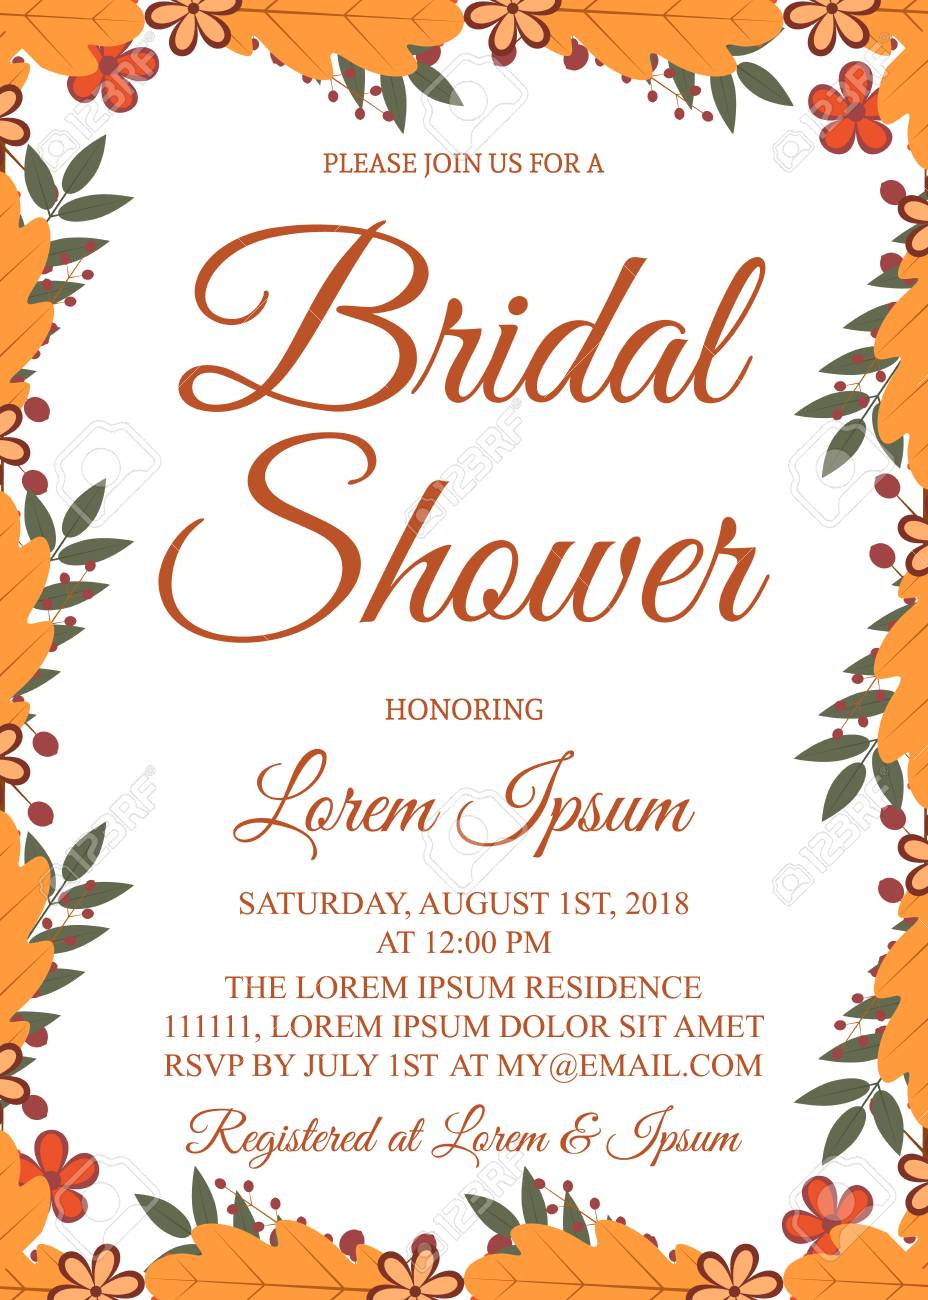 Autumn Bridal Shower Invitation Card Border With Colorful Leaves